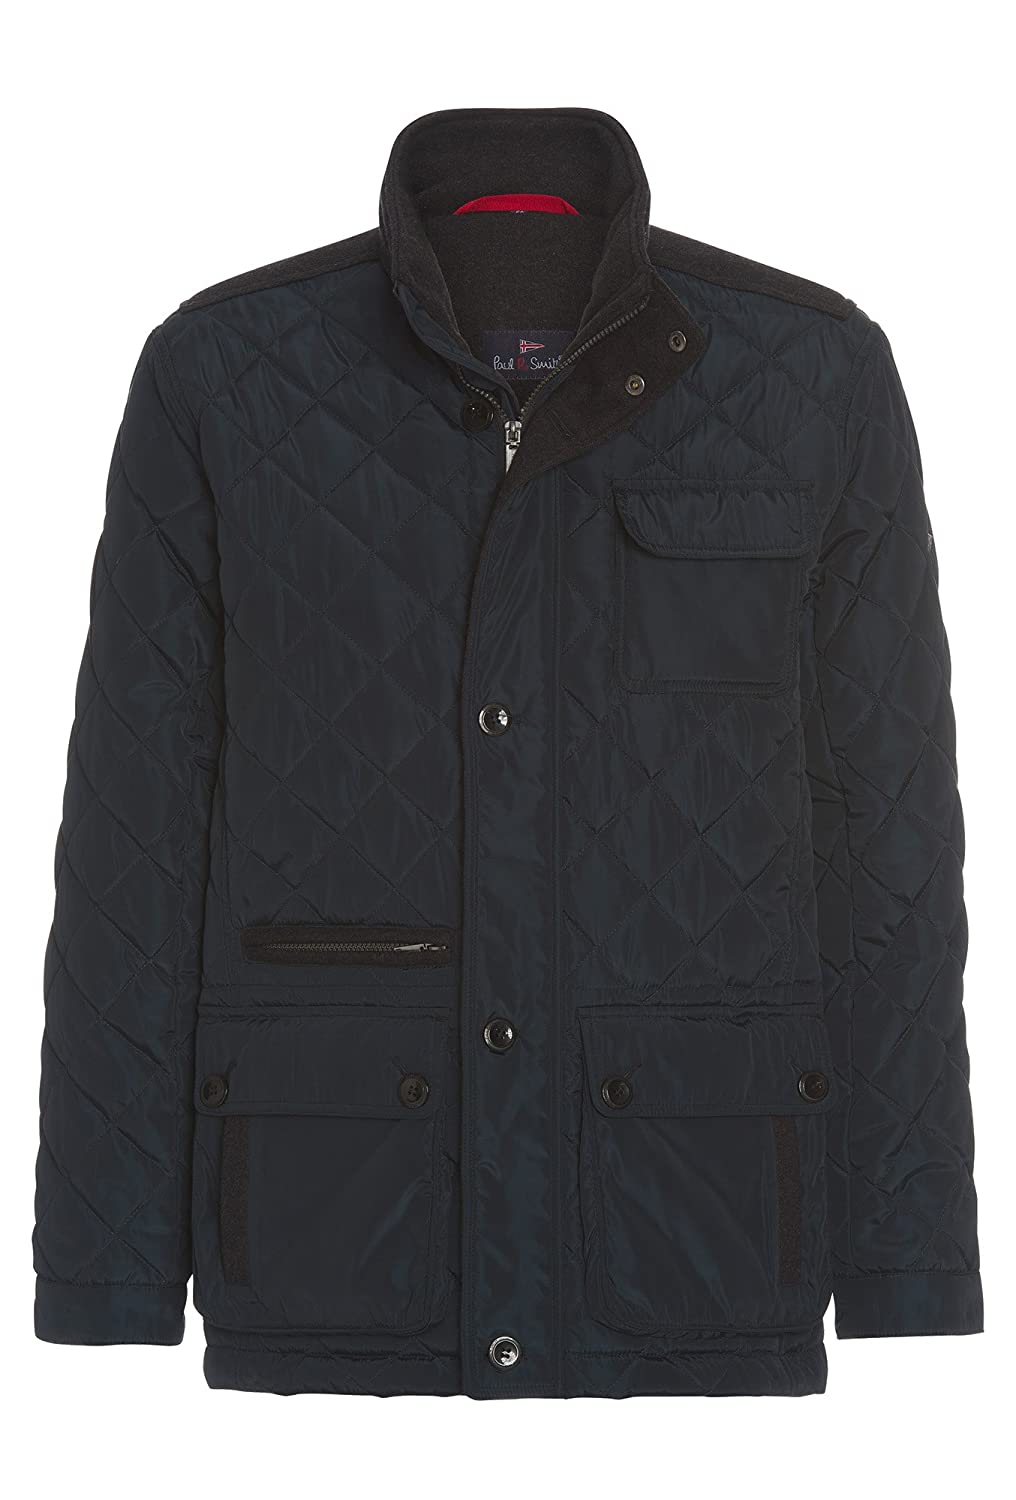 Paul R.Smith, Dunkelblaue Steppjacke Mit Akzenten In Wolloptik, Herren